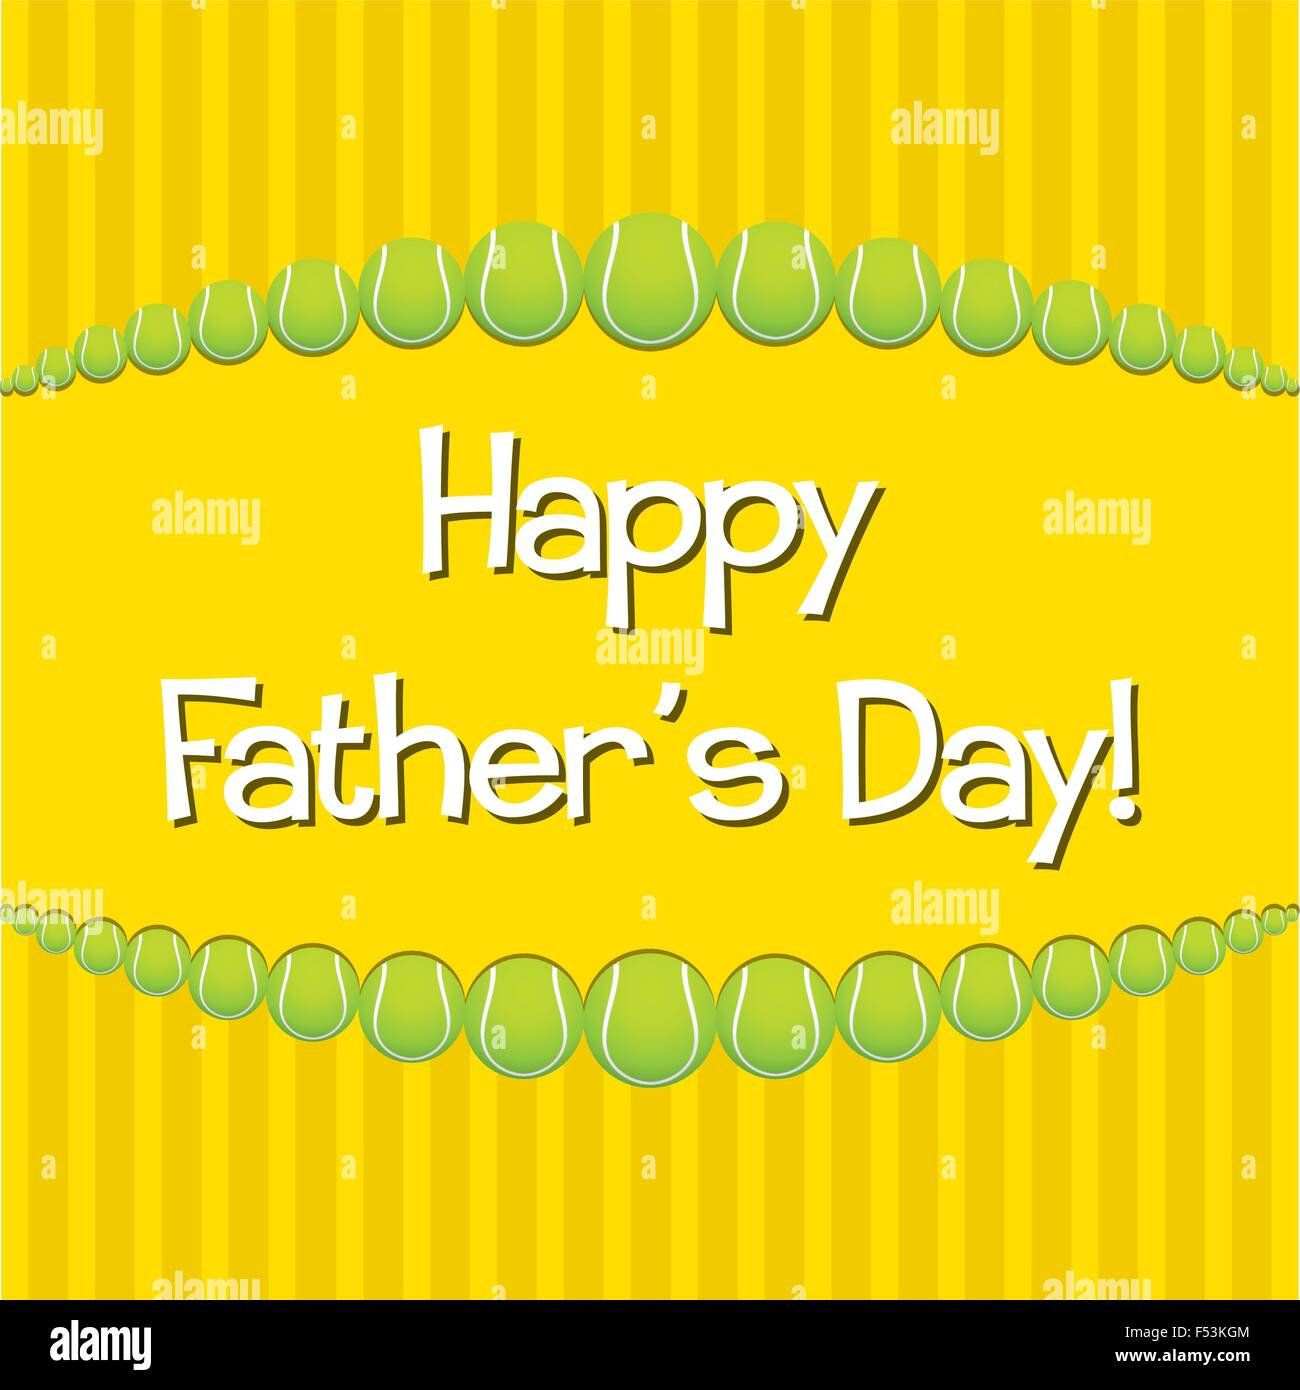 French Happy Fathers Day Card Stock Photos French Happy Fathers